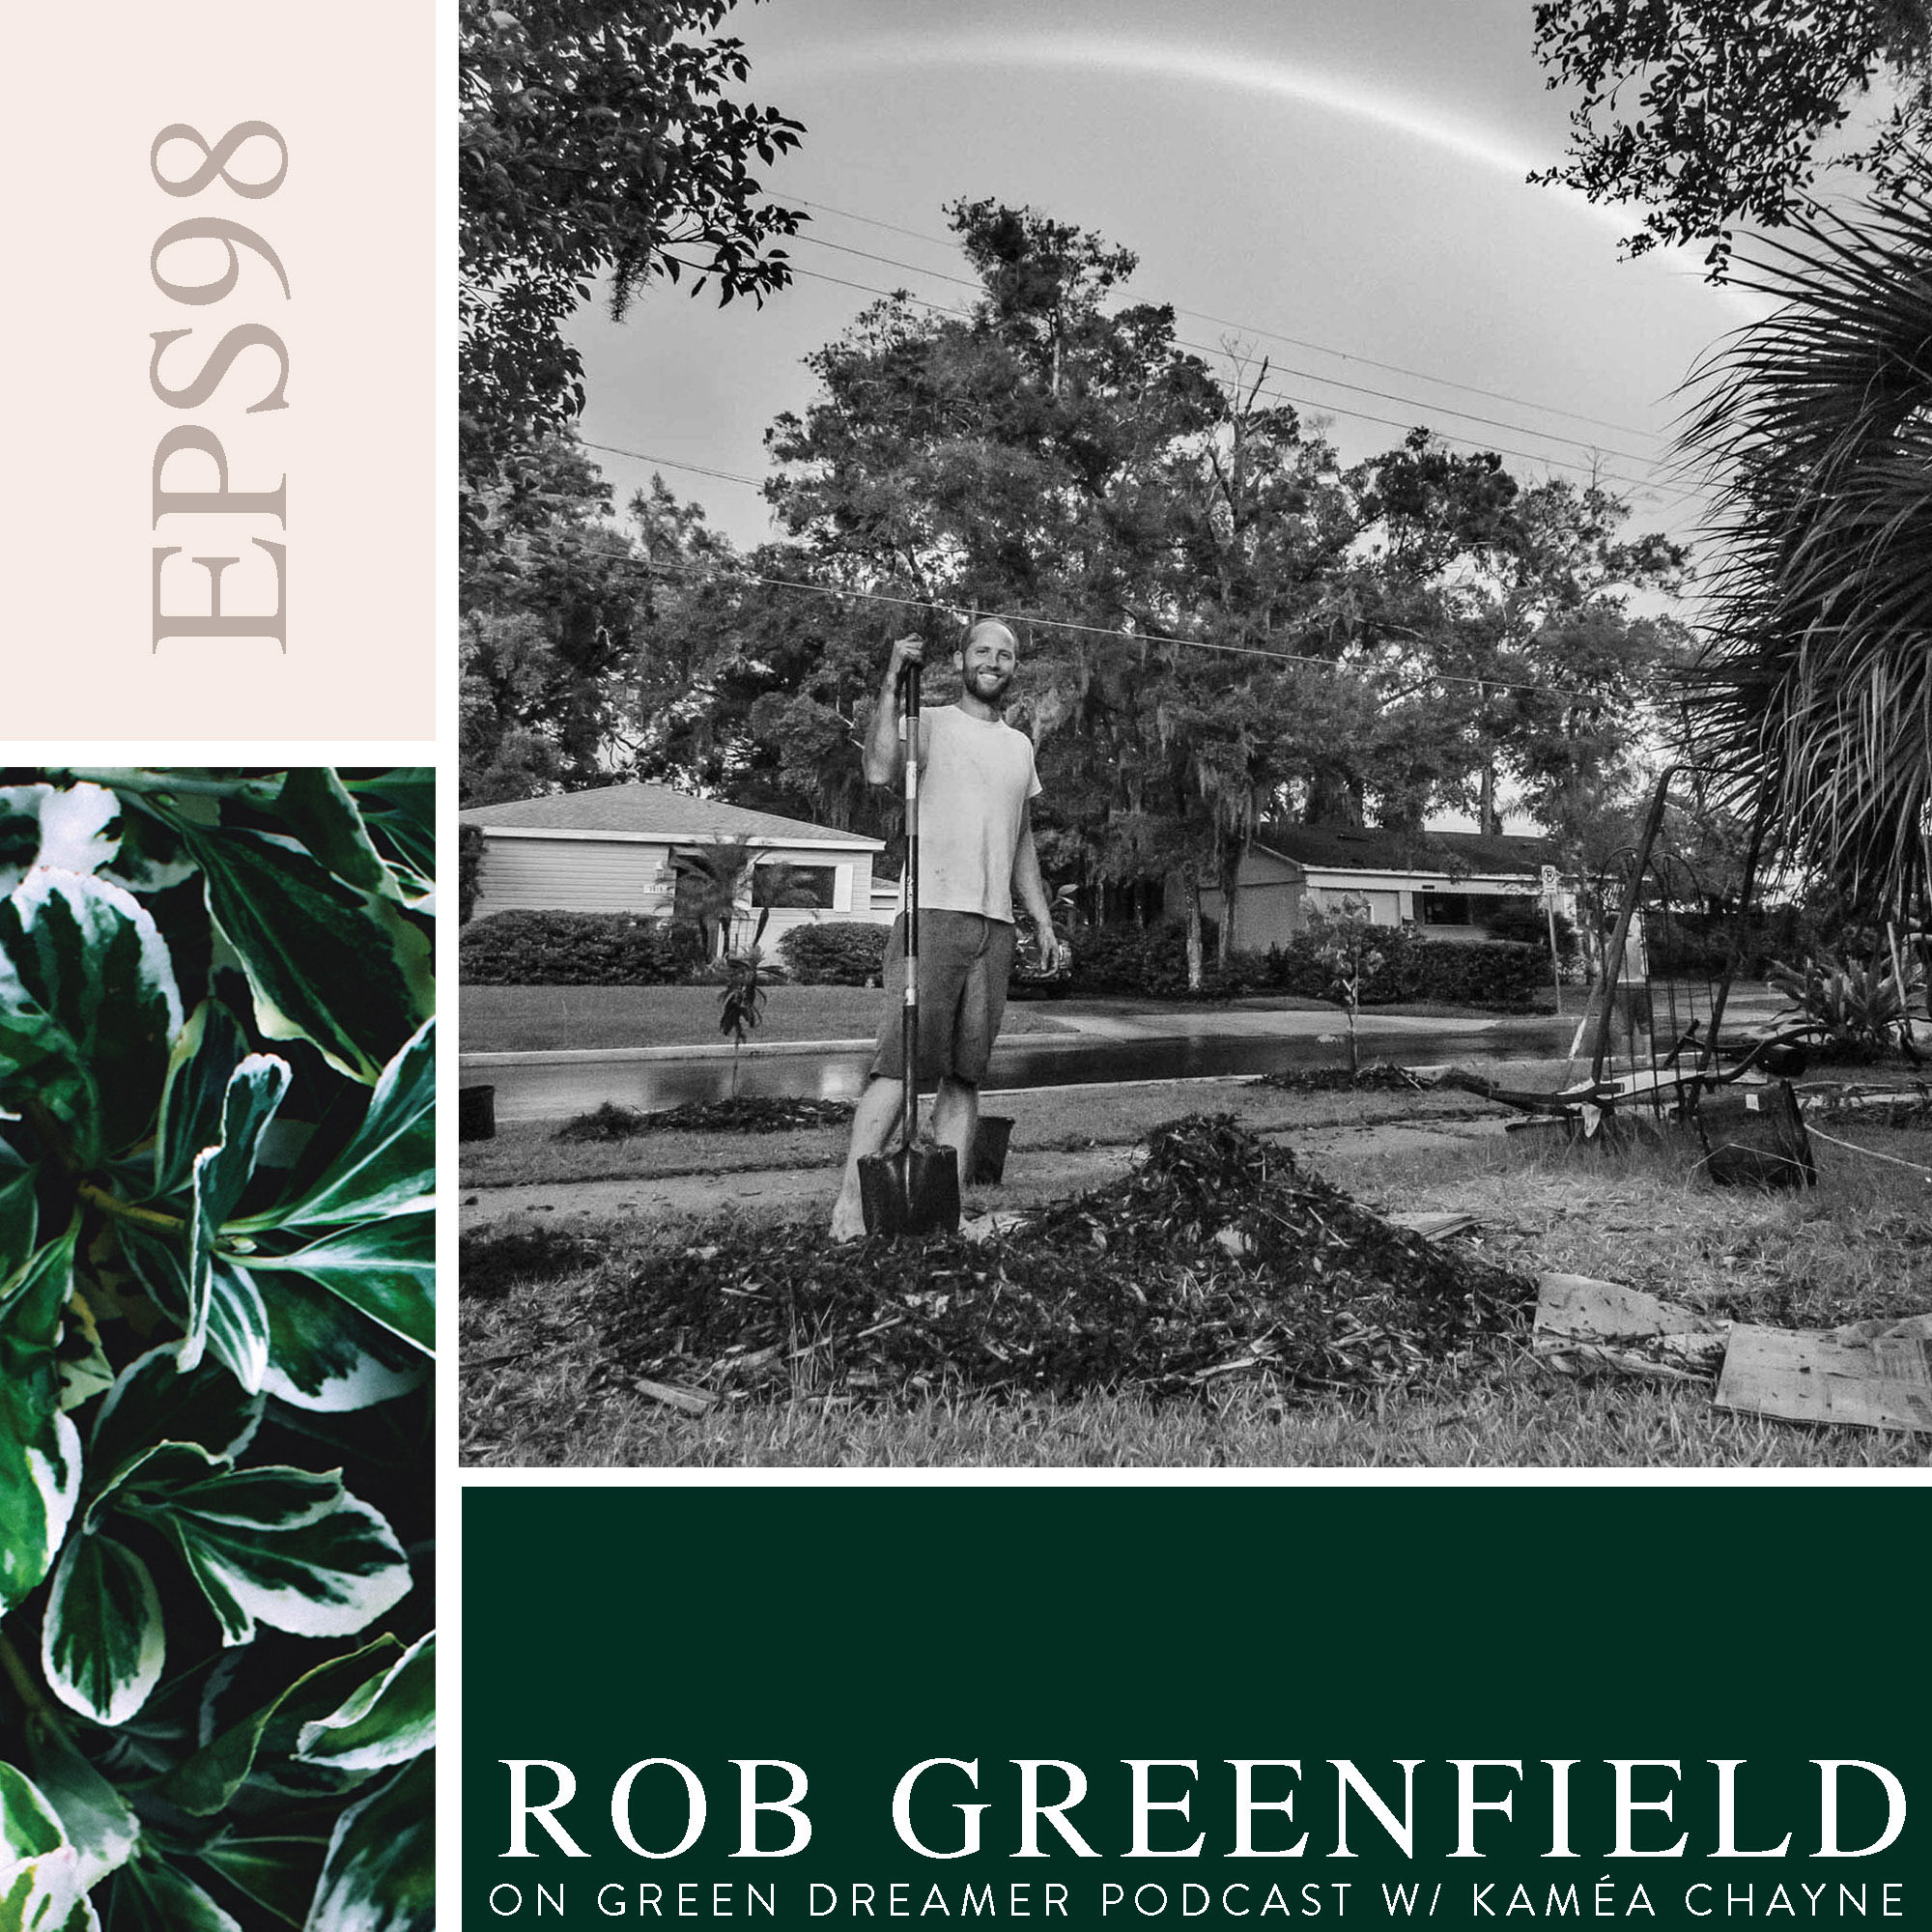 98) BW Rob Greenfield talks Sustainability on Green Dreamer Podcast with Kamea Chayne copy copy.jpg